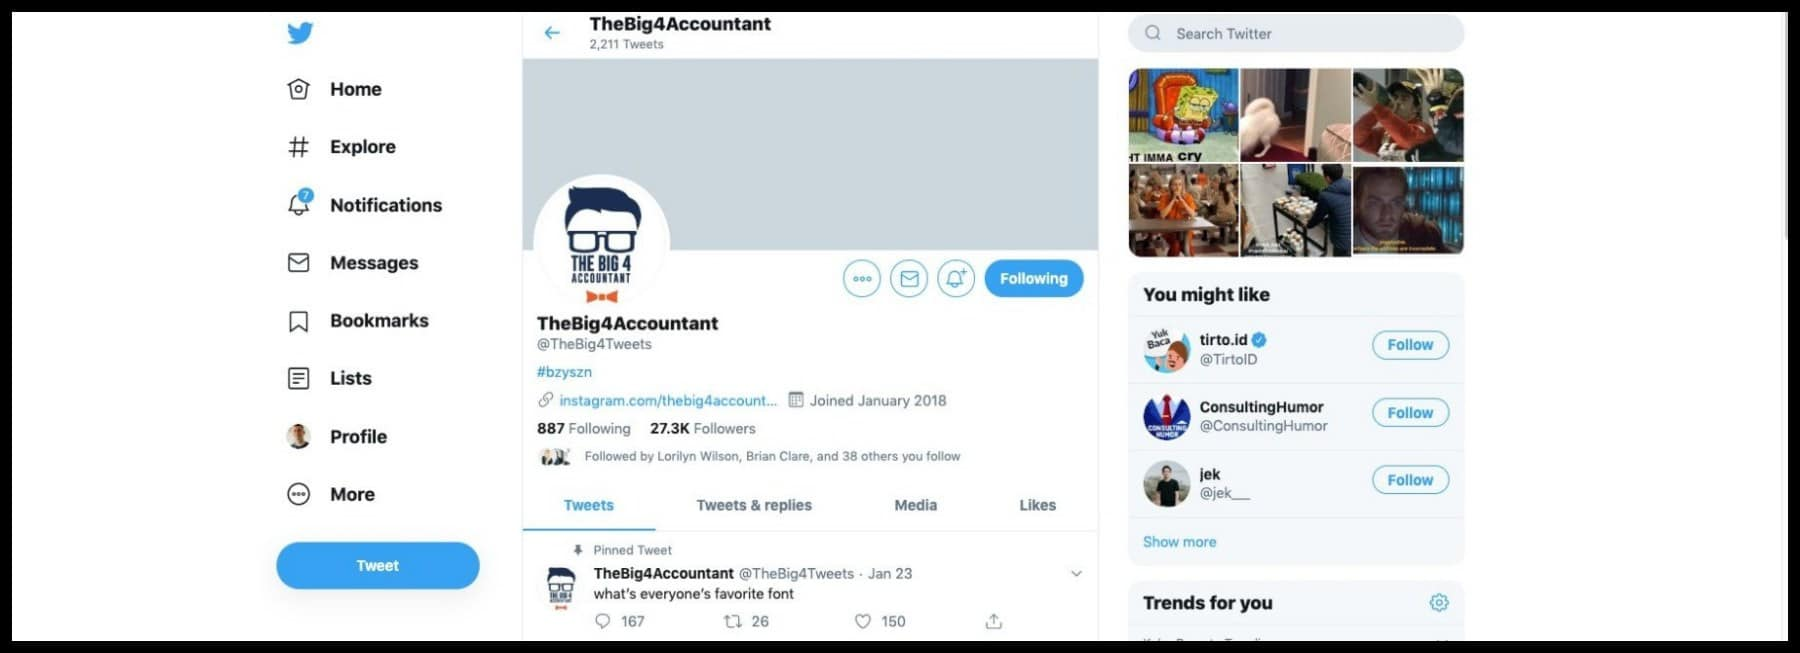 big4accountant